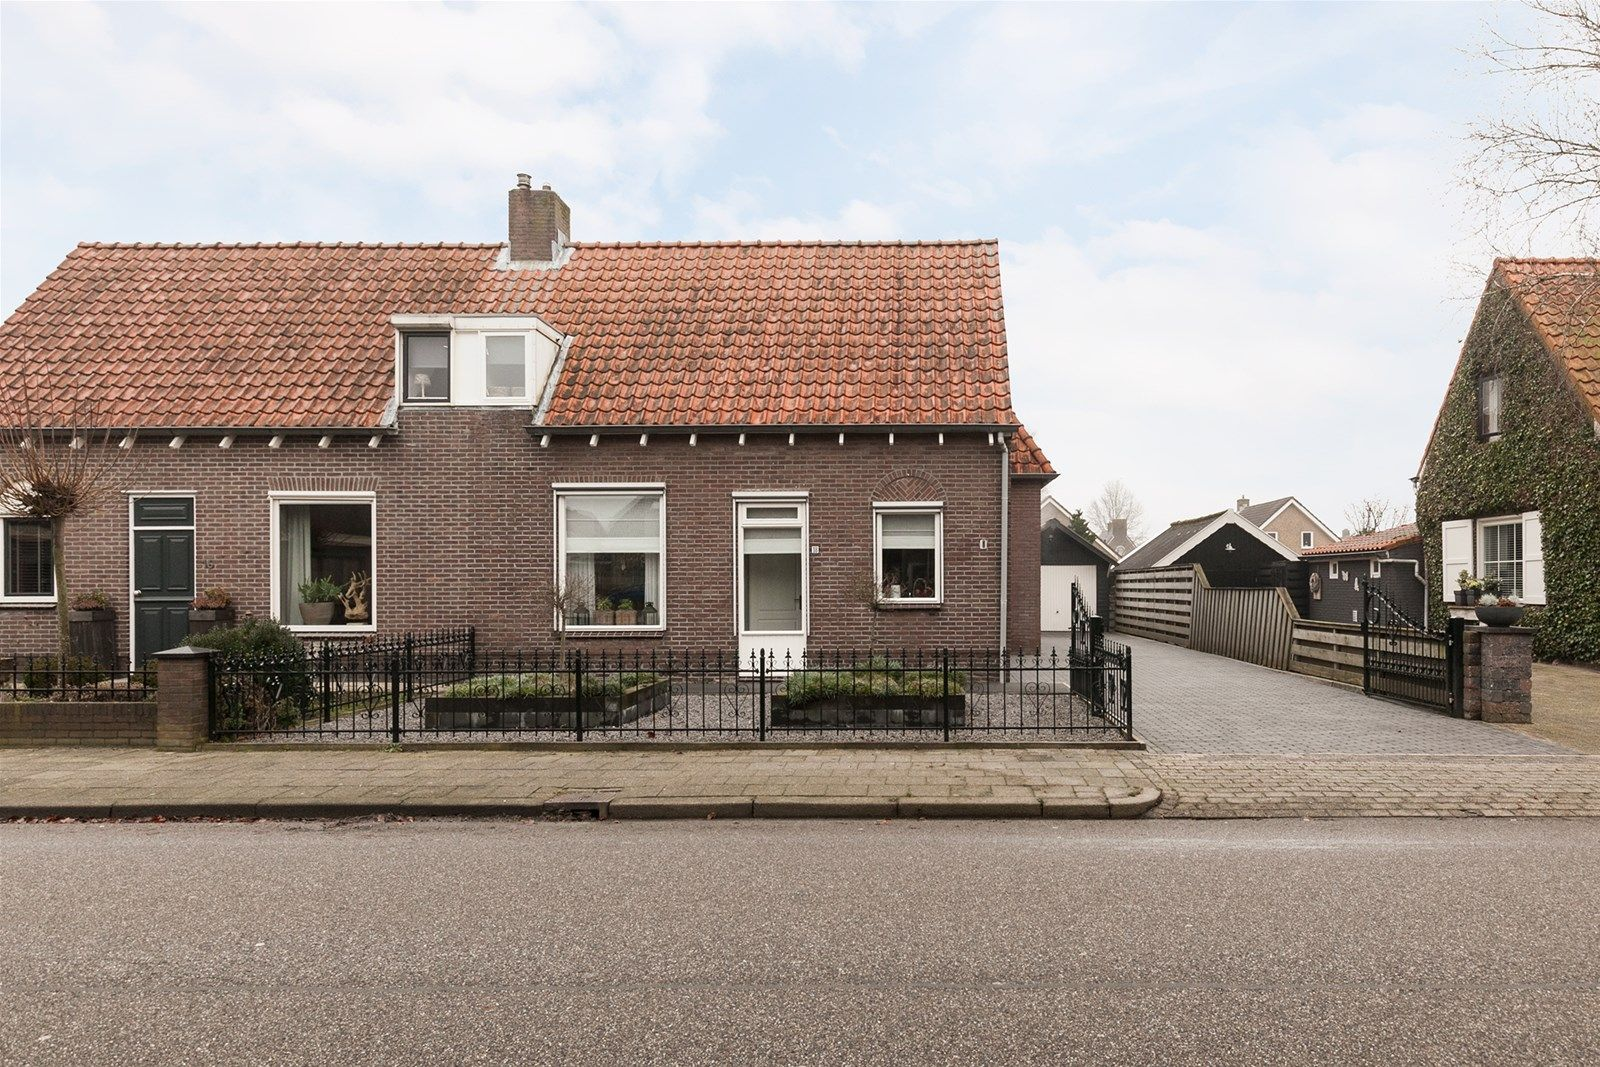 Rustenburgsweg 18, Oldebroek